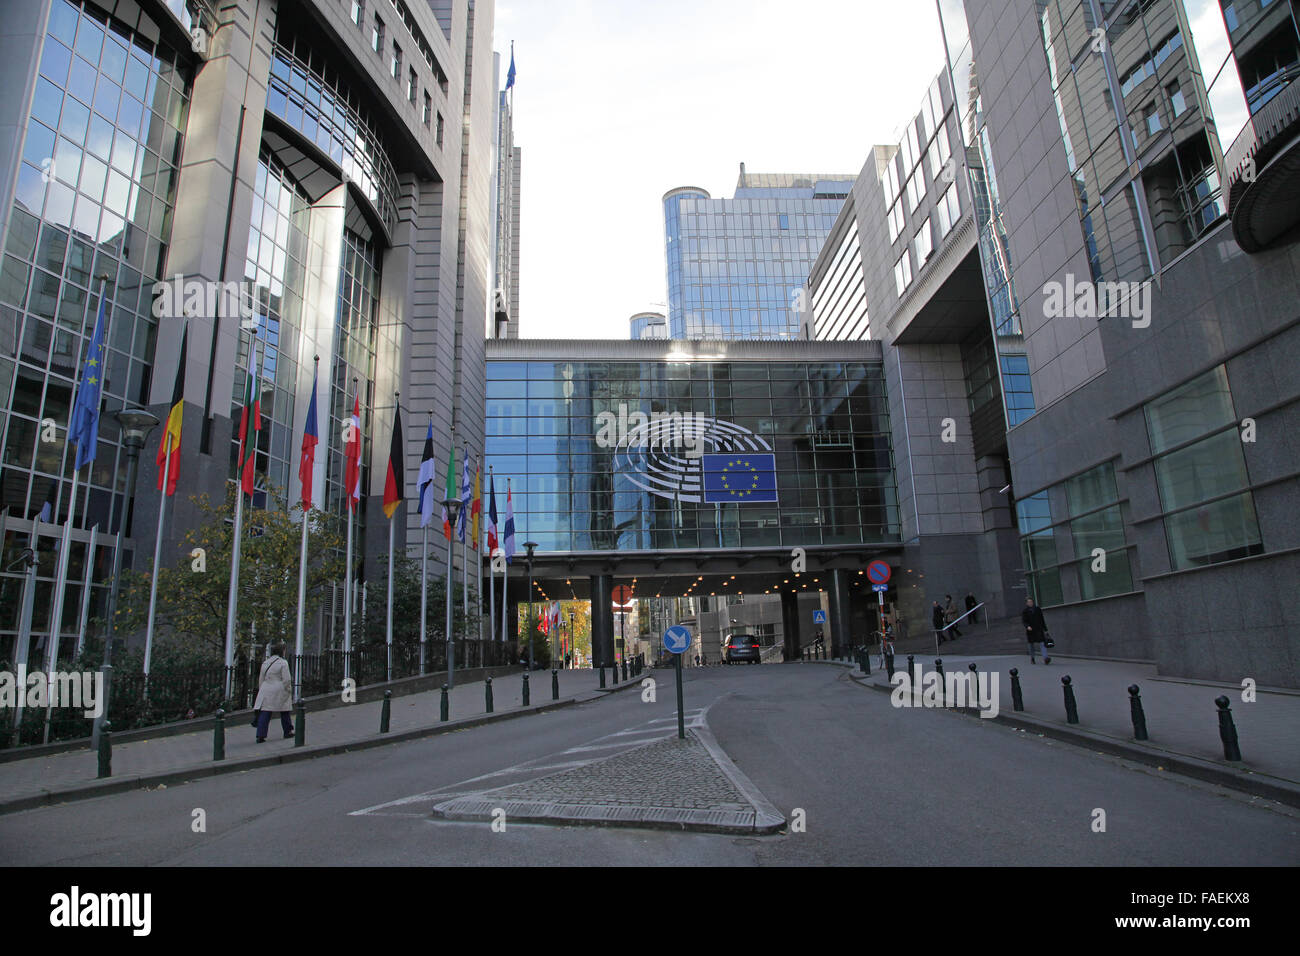 European union headquarters in Brussels Belgium - Stock Image